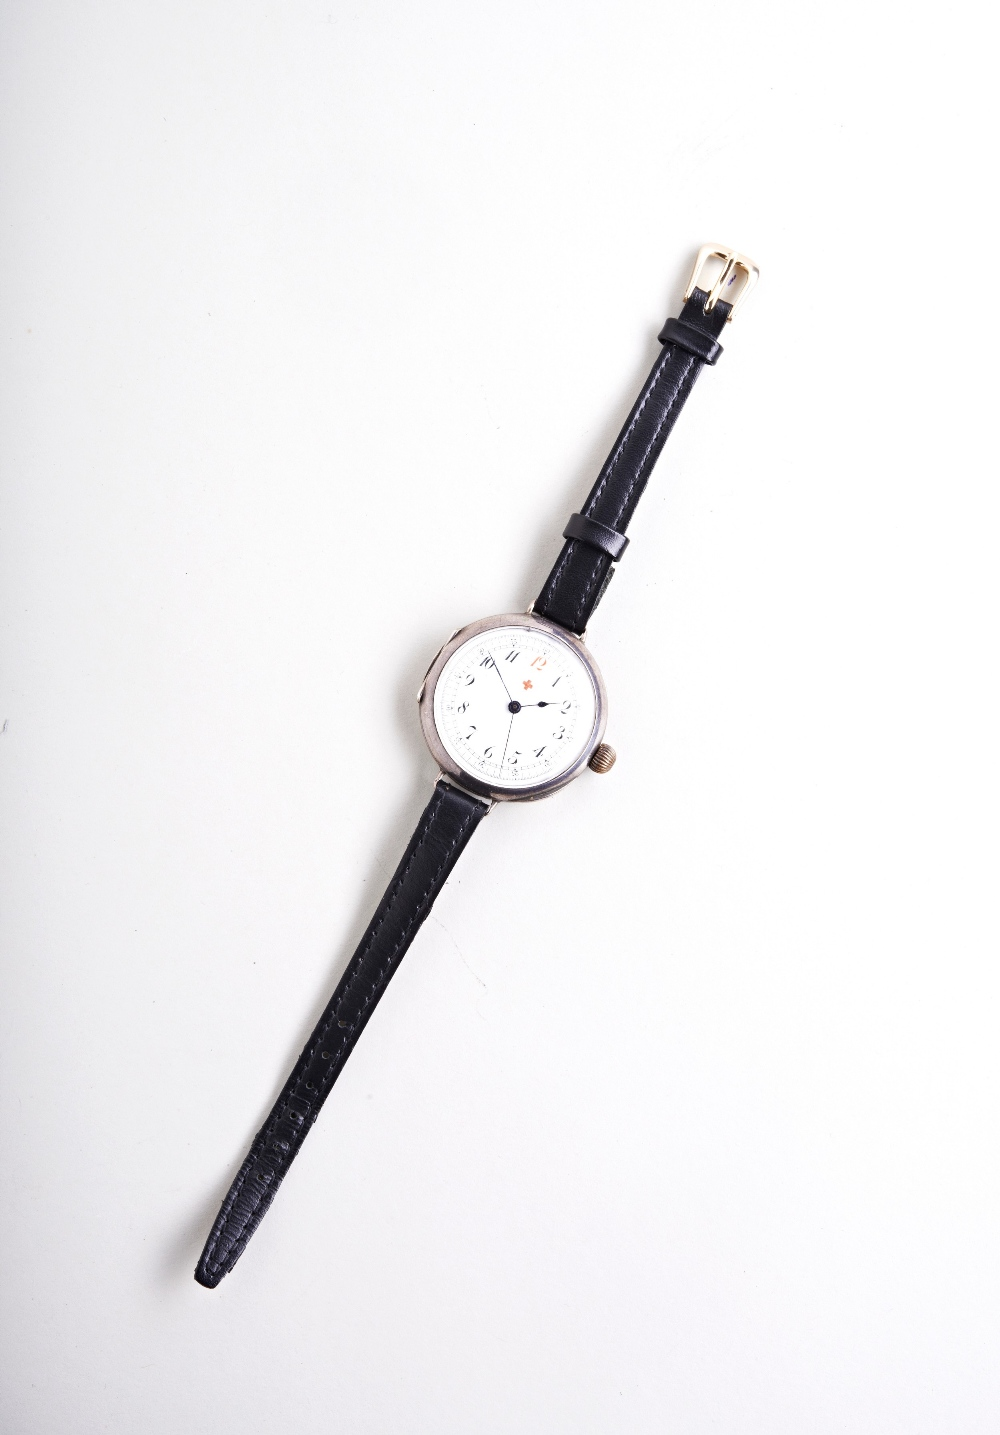 SWISS 'DOCTORS' SILVER MANUAL WRISTWATCH, early 20th century, the white enamel dial with - Image 2 of 3